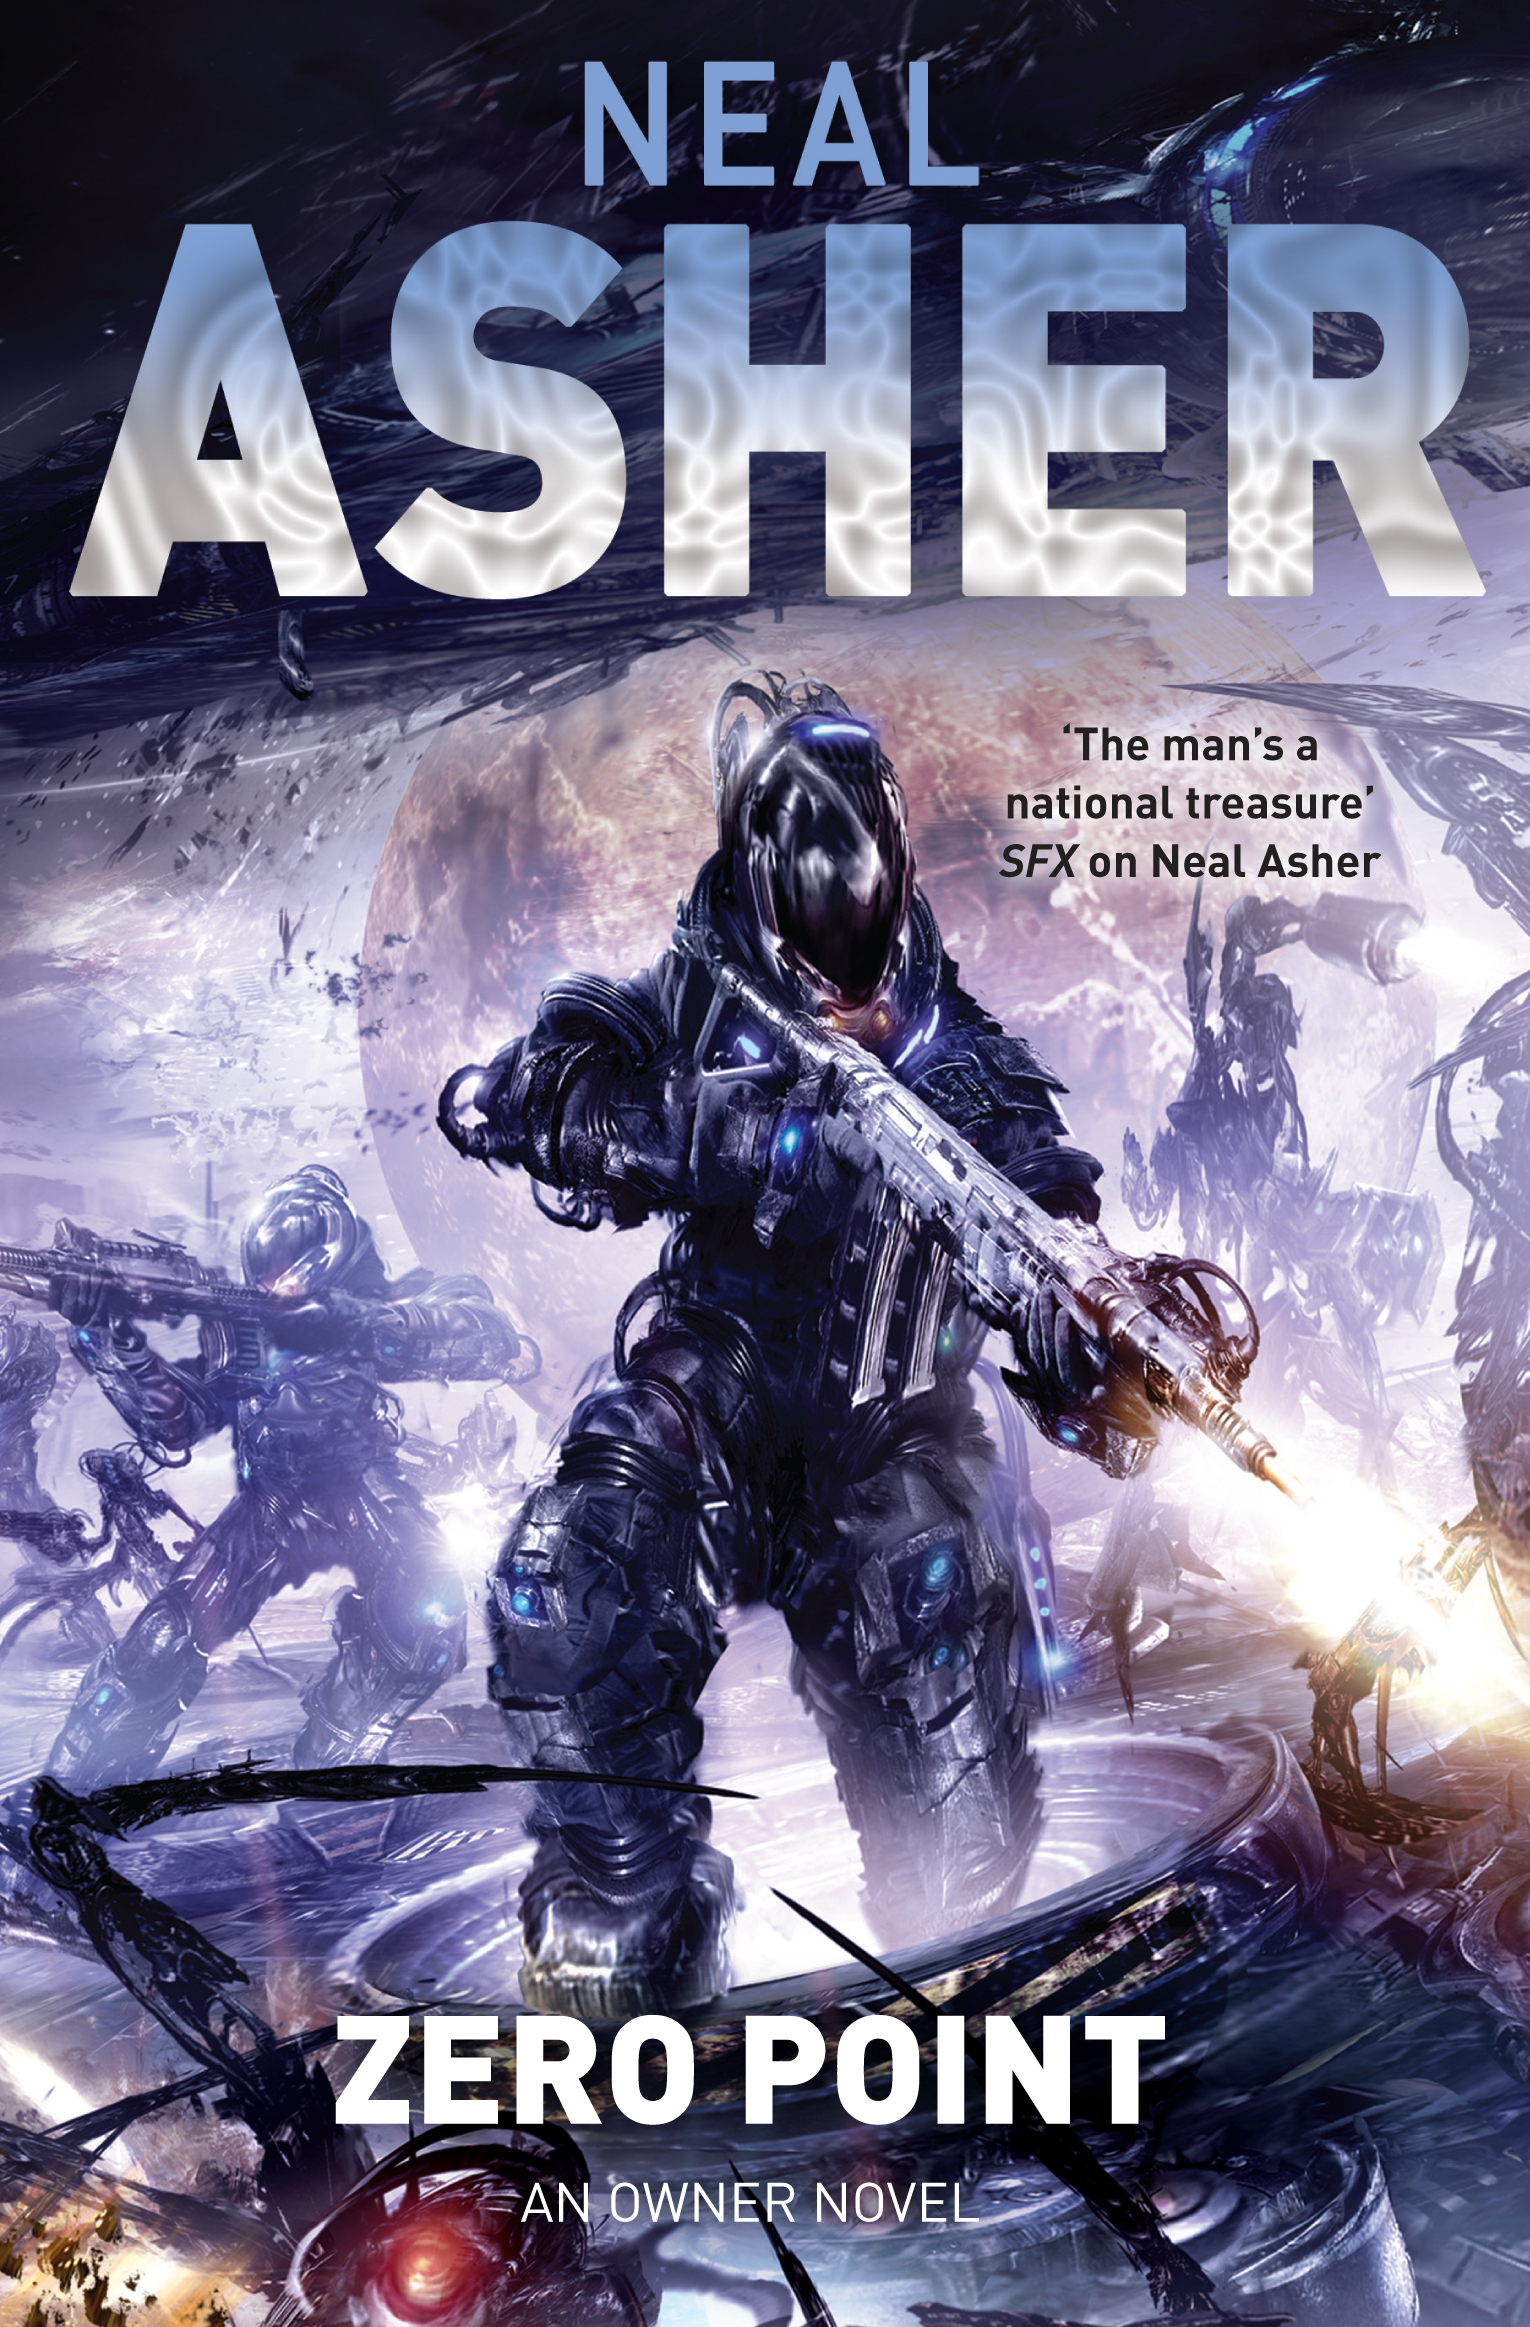 Zero Point by Neal Asher (Book 2 in the Owner trilogy - design by Neil Lang, illustration by Jon Sullivan)